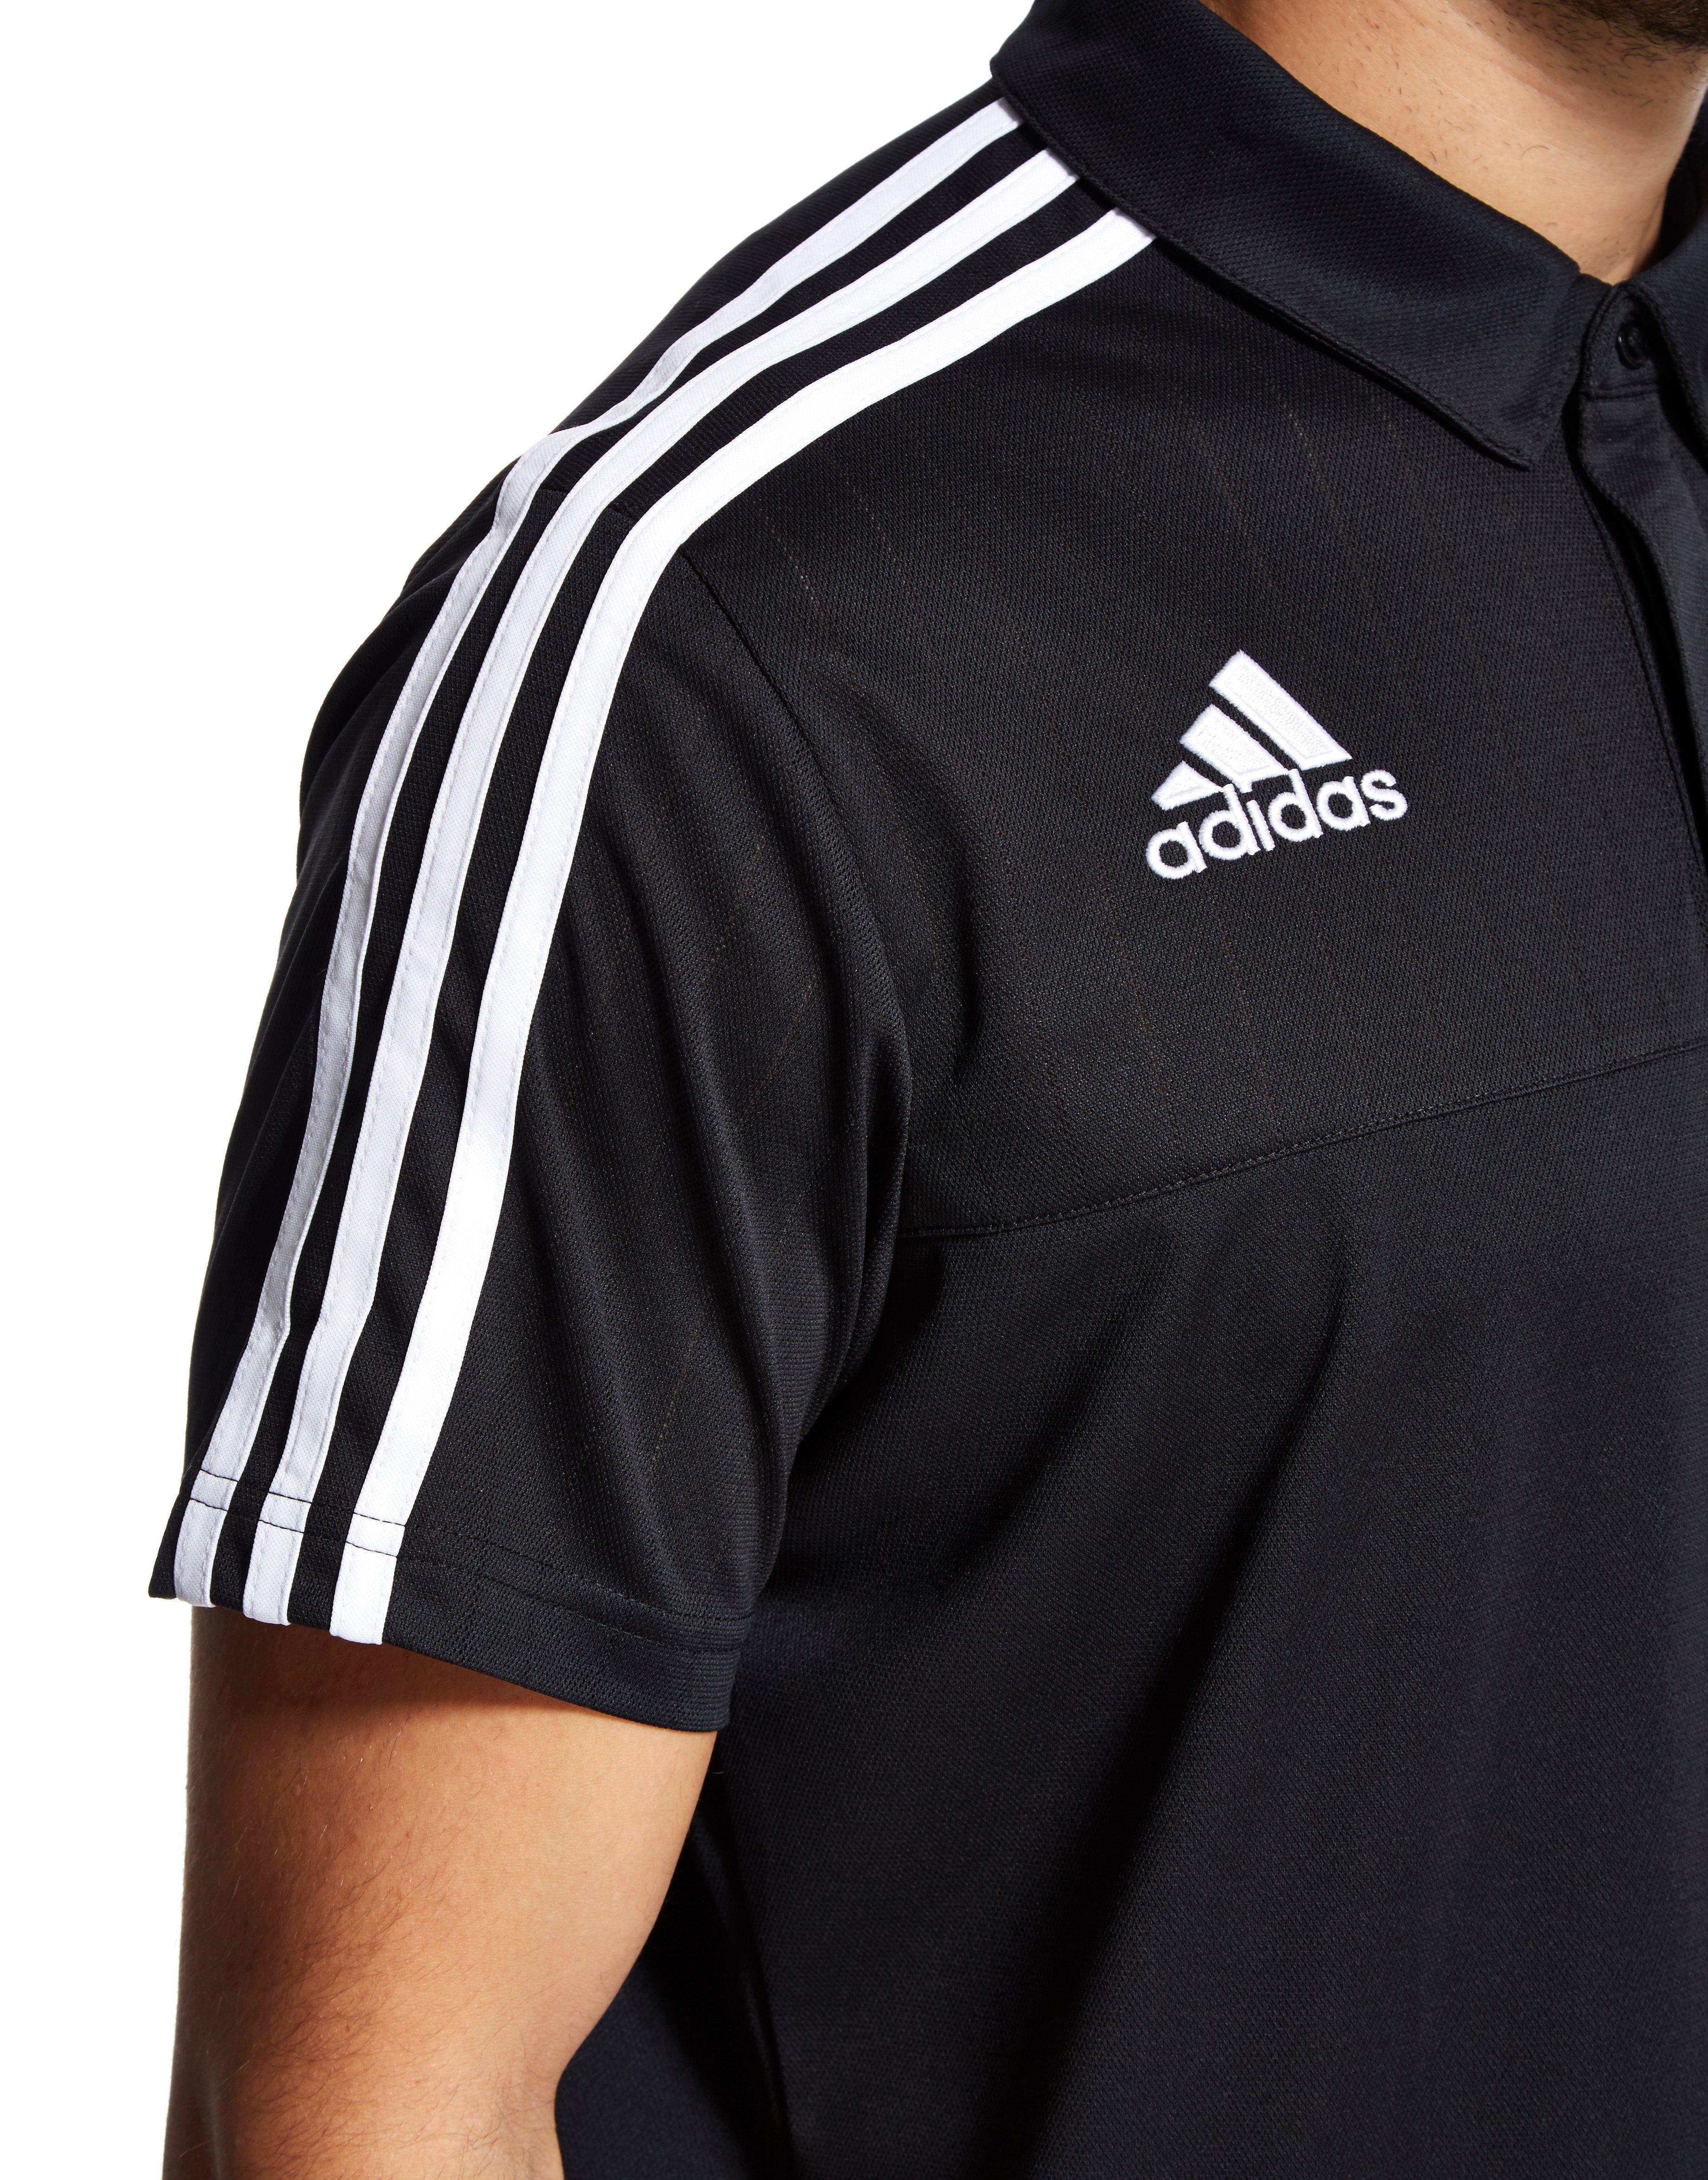 c5f8f968c4f adidas Northern Ireland Climalite Polo Shirt in Black for Men - Lyst